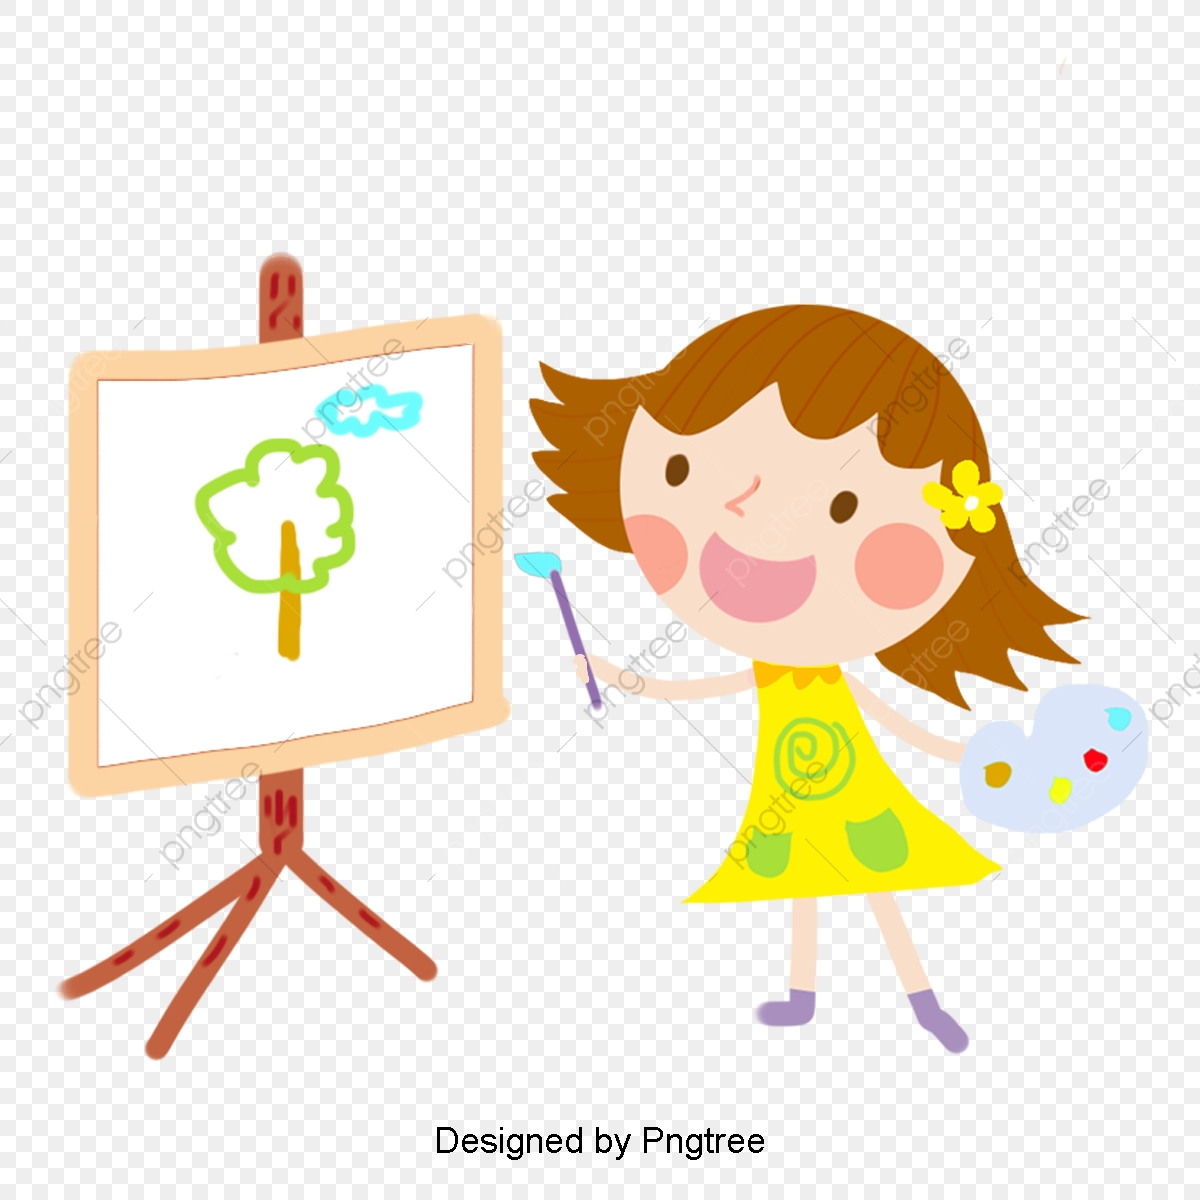 Color Cartoon Hand Painted Girl Drawing Color Cartoon Hand Painted Png Transparent Clipart Image And Psd File For Free Download Cartoon trees are one of the easiest things to learn to draw. https pngtree com freepng color cartoon hand painted girl drawing 3689827 html